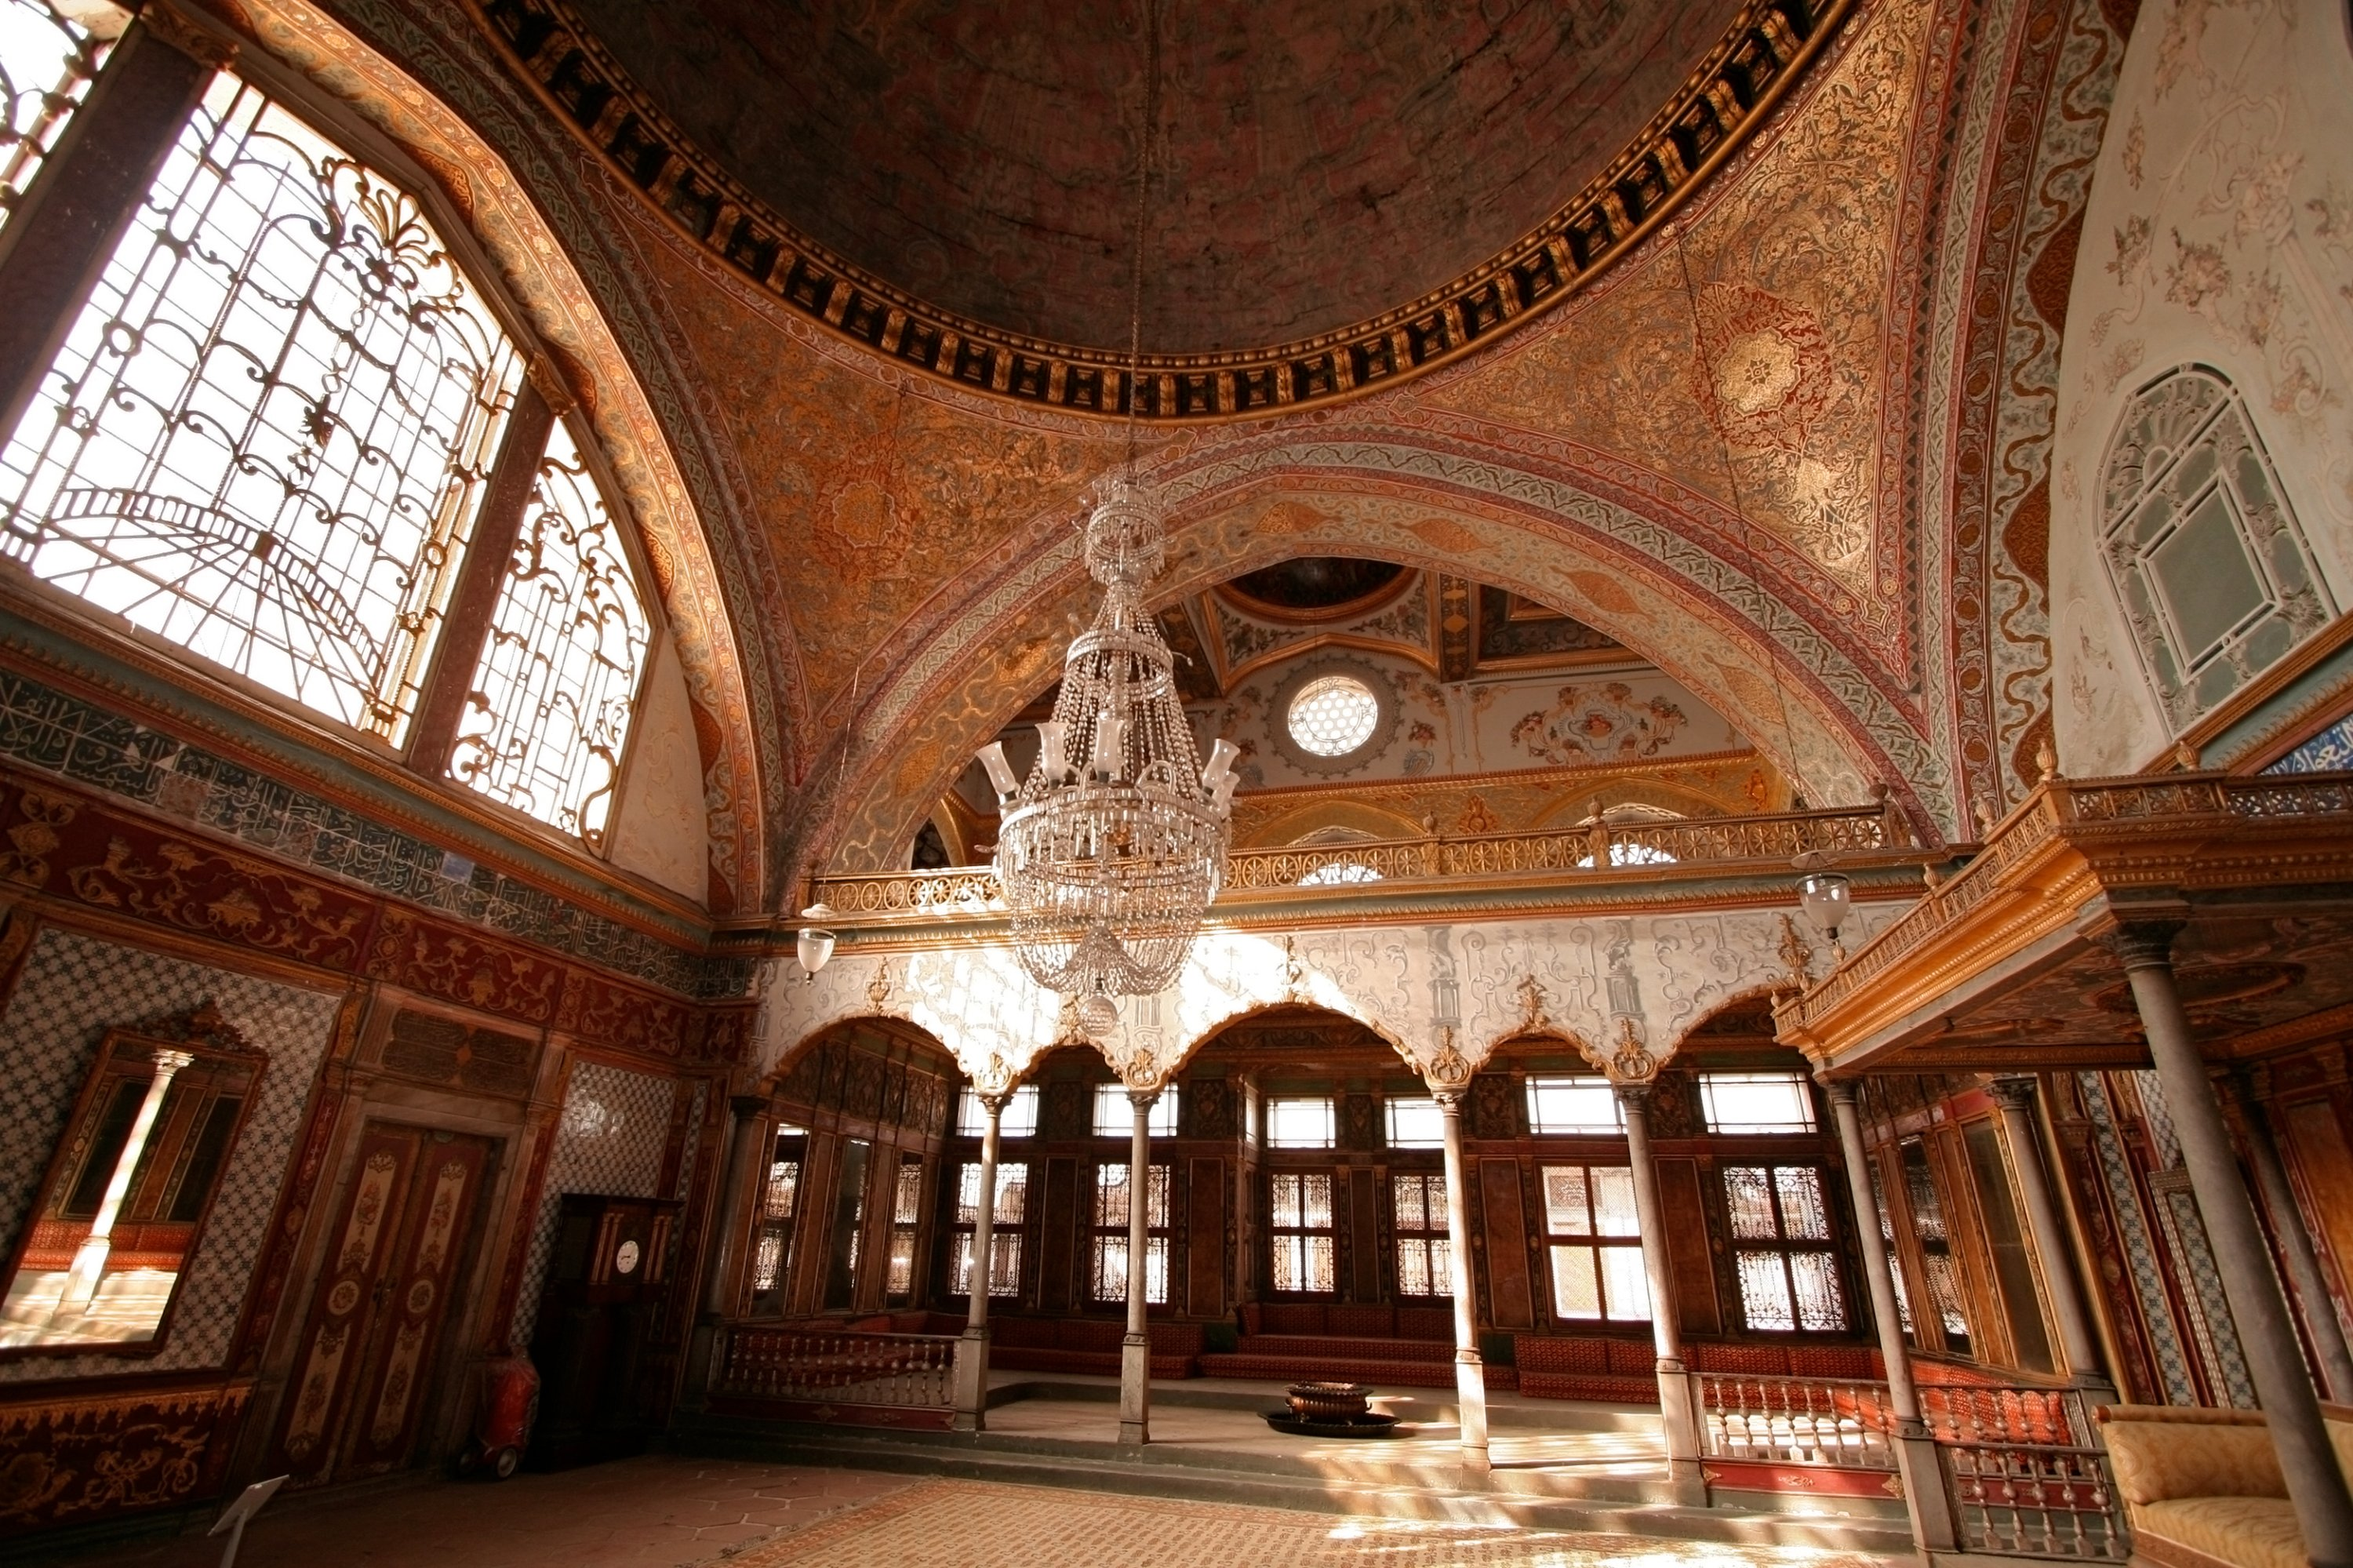 The Topkapı Palace served as the main residence and administrative headquarters of Ottoman sultans in the 15th and 16th centuries. (iStock Photo)